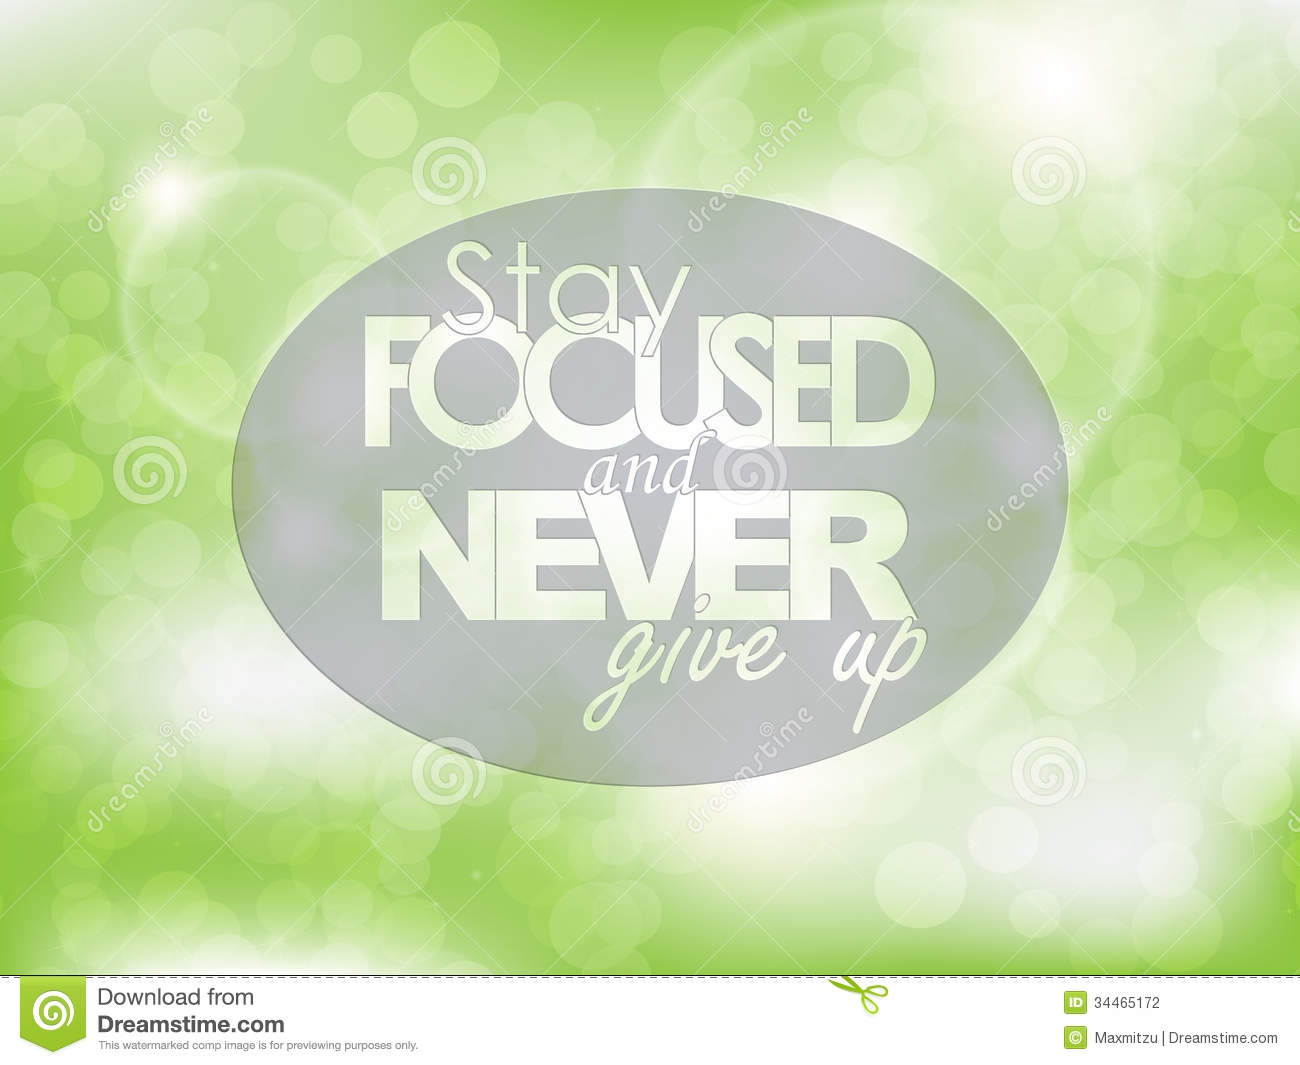 Never Give Up: How to Stay Focused on Your Goals